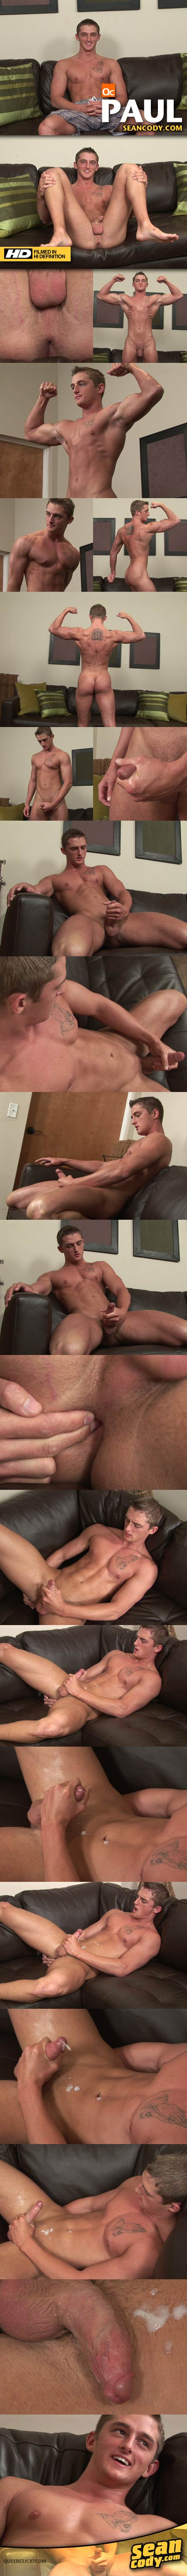 Sean Cody: Paul